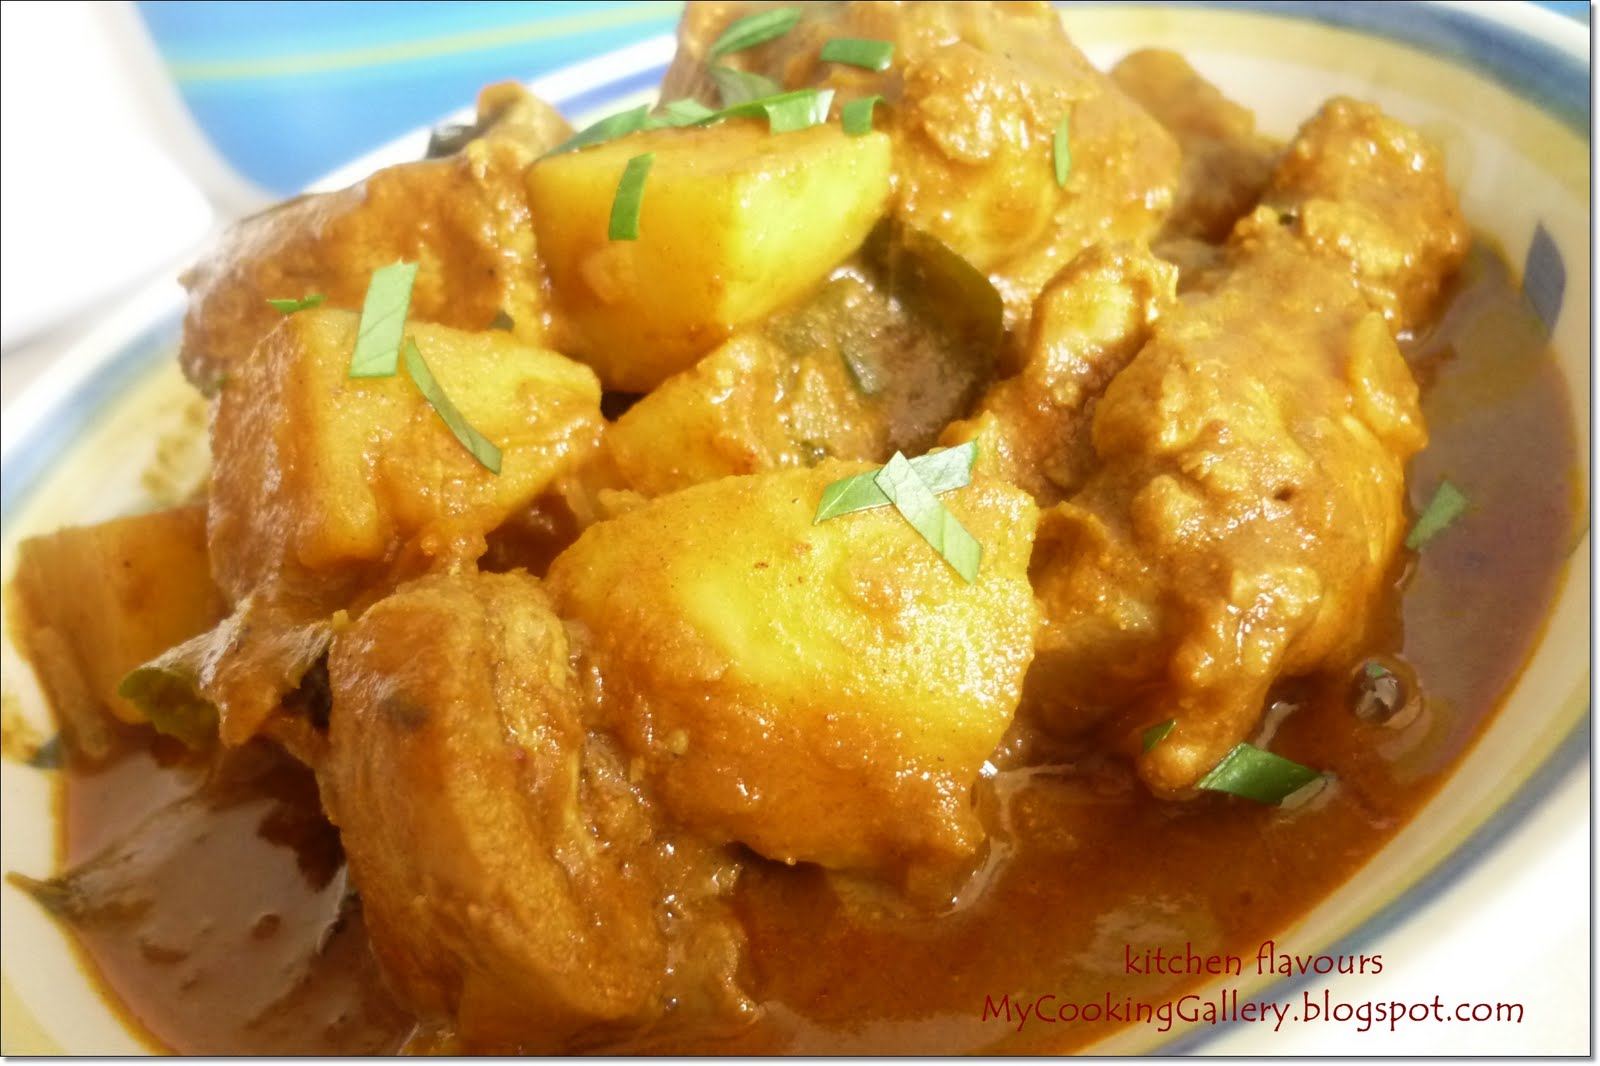 kitchen flavours: Chicken Curry